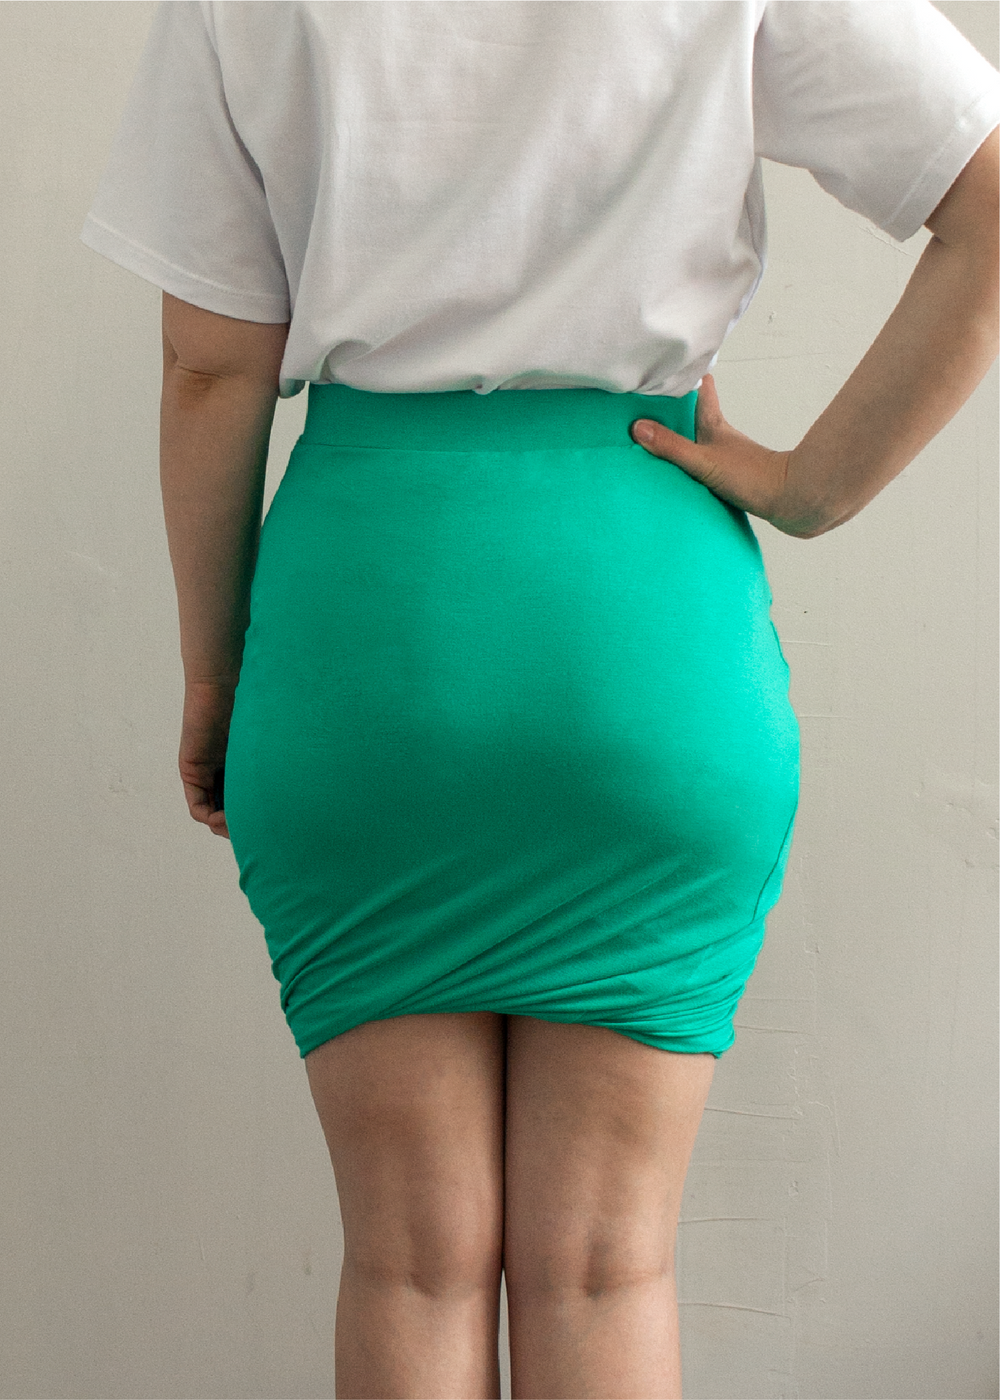 EUROPA the twisted skirt - PDF sewing pattern